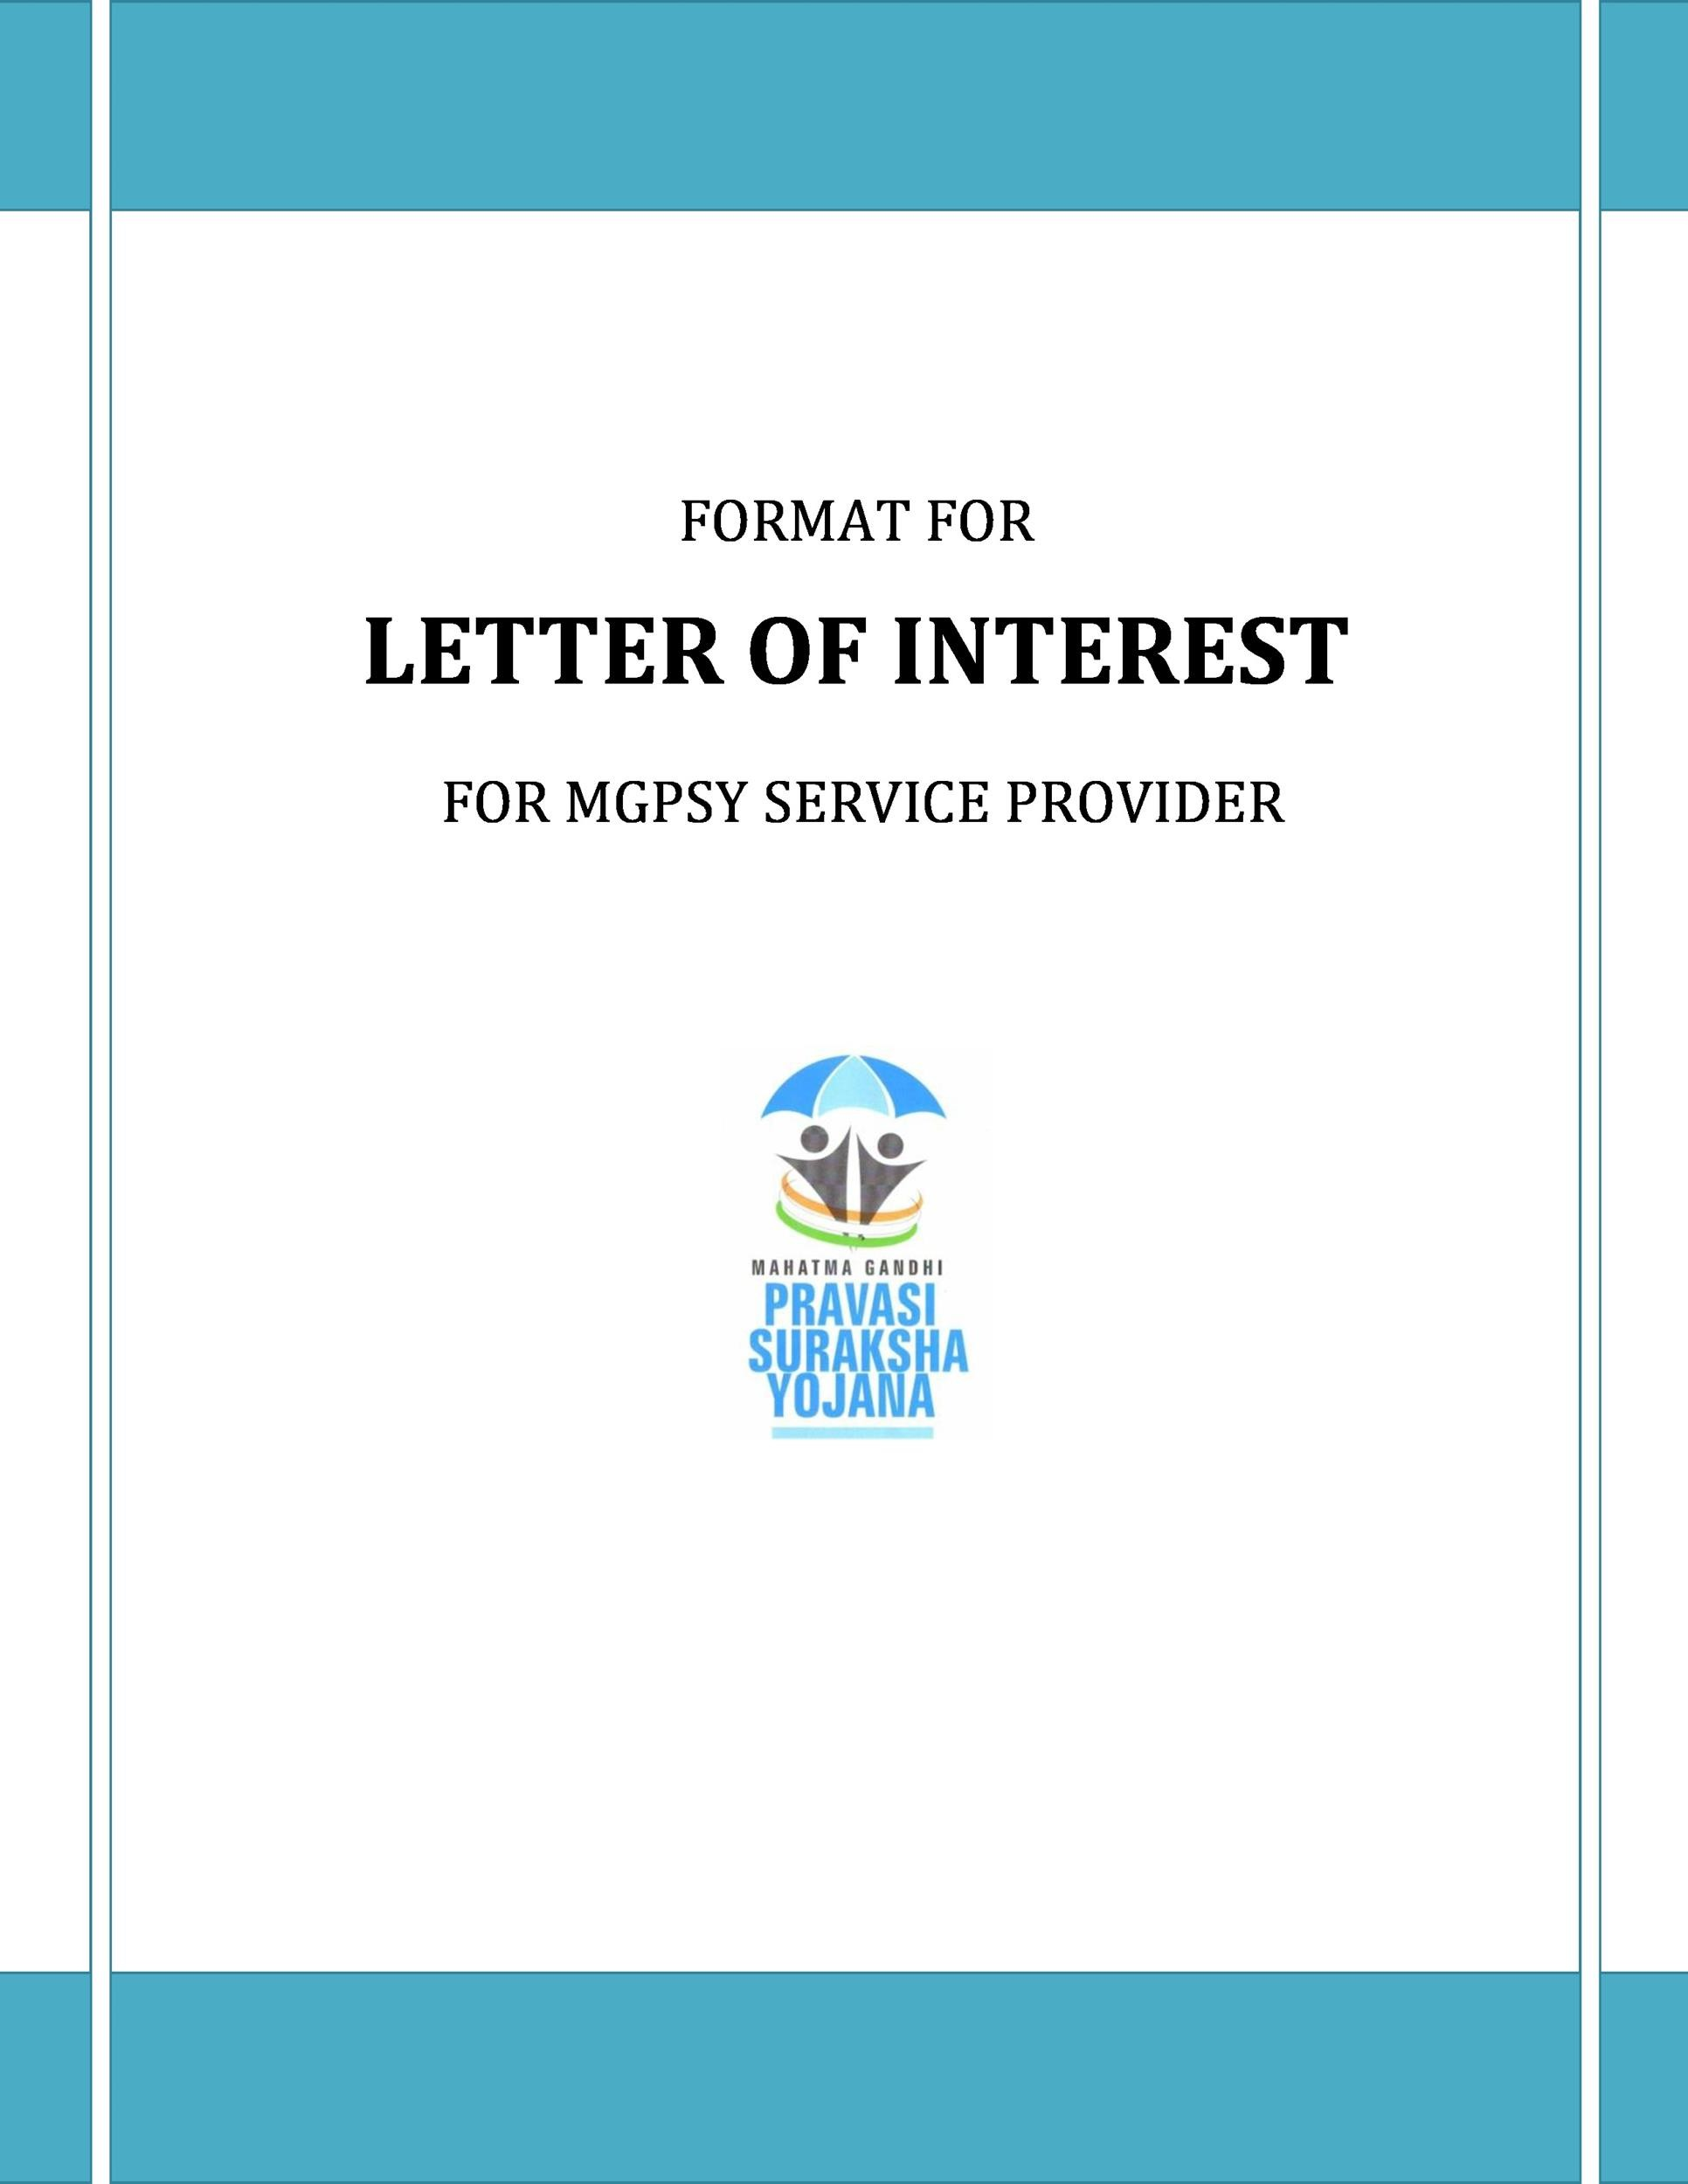 Free letter of interest 19